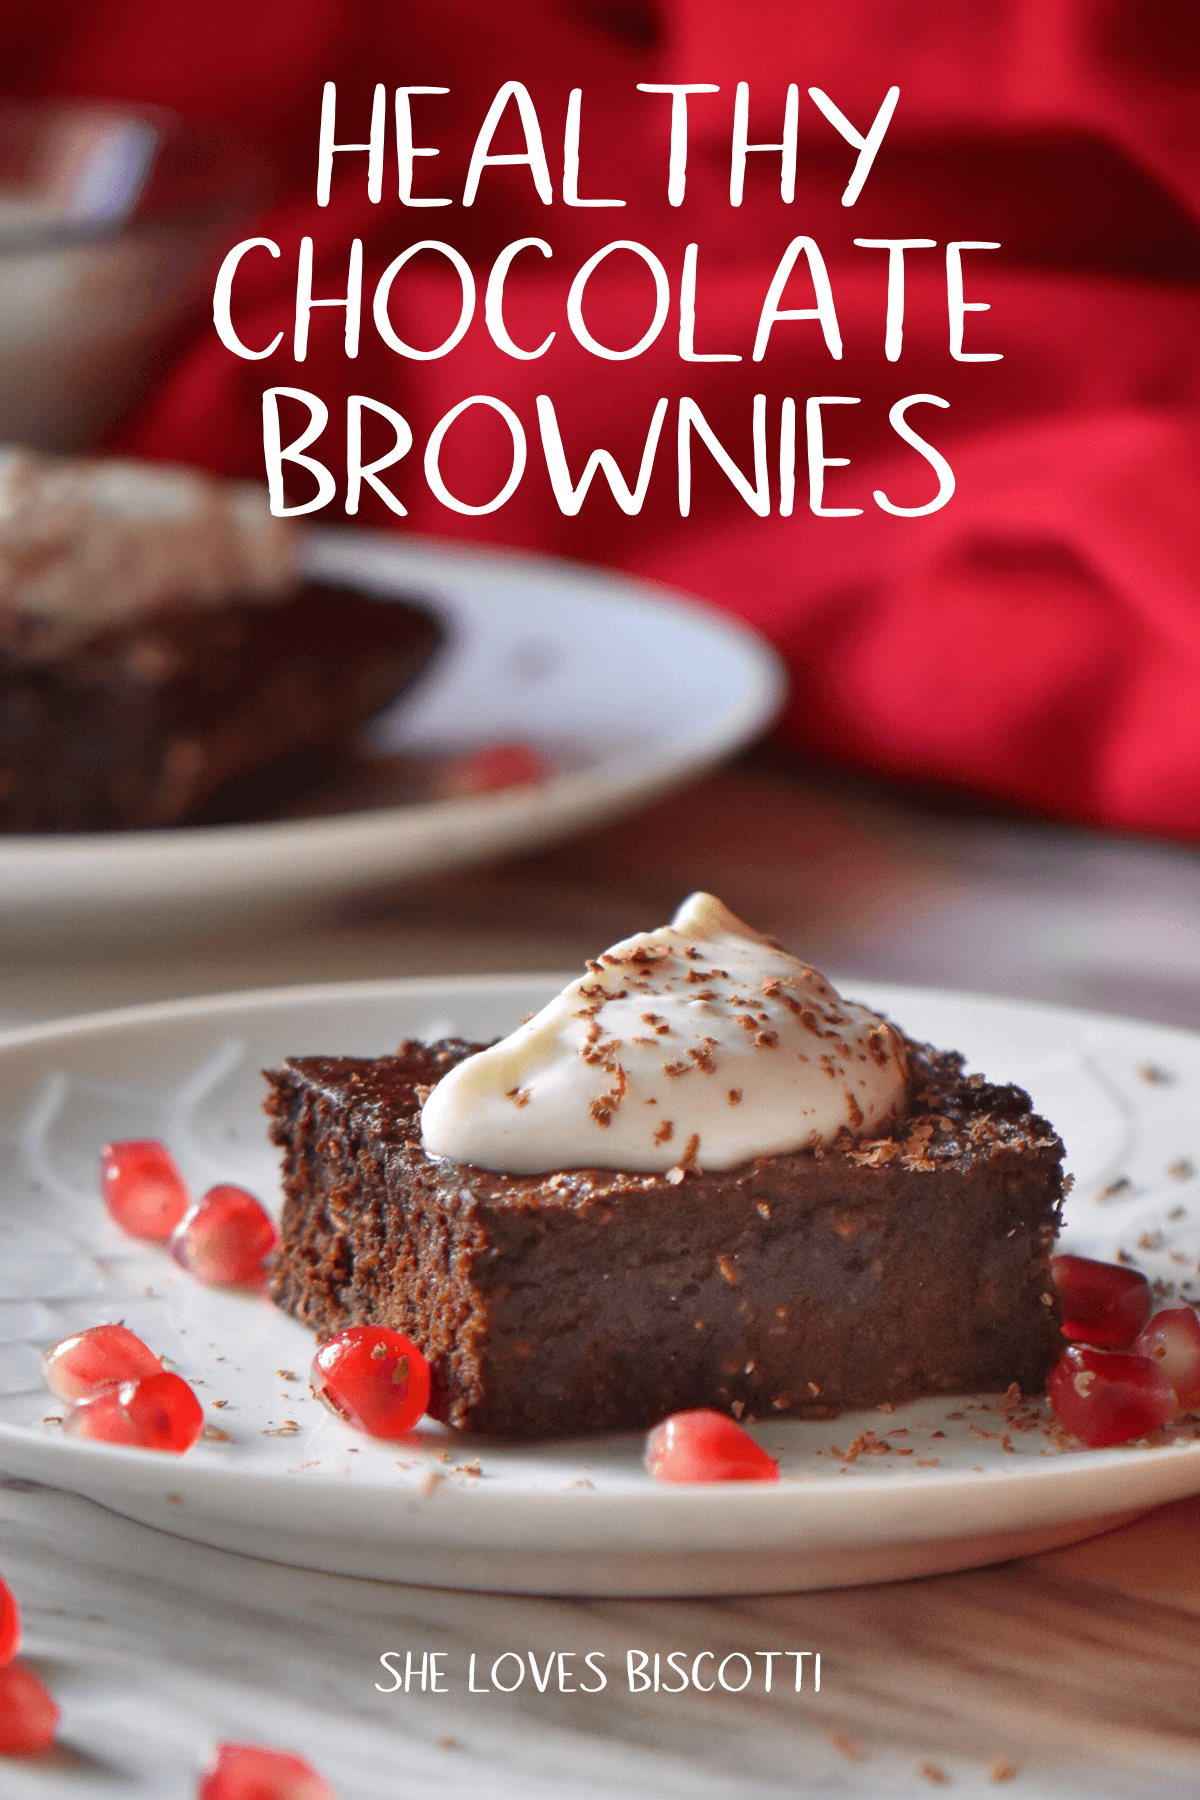 Healthy Chocolate Brownies recipe || Gluten Free Brownies || Date Brownies #brownies  #oatflour #healthybrownies #healthyrecipes #healthydessert #healthytreats #Pomegranate #ValentinesDay #datebrownies #ricotta